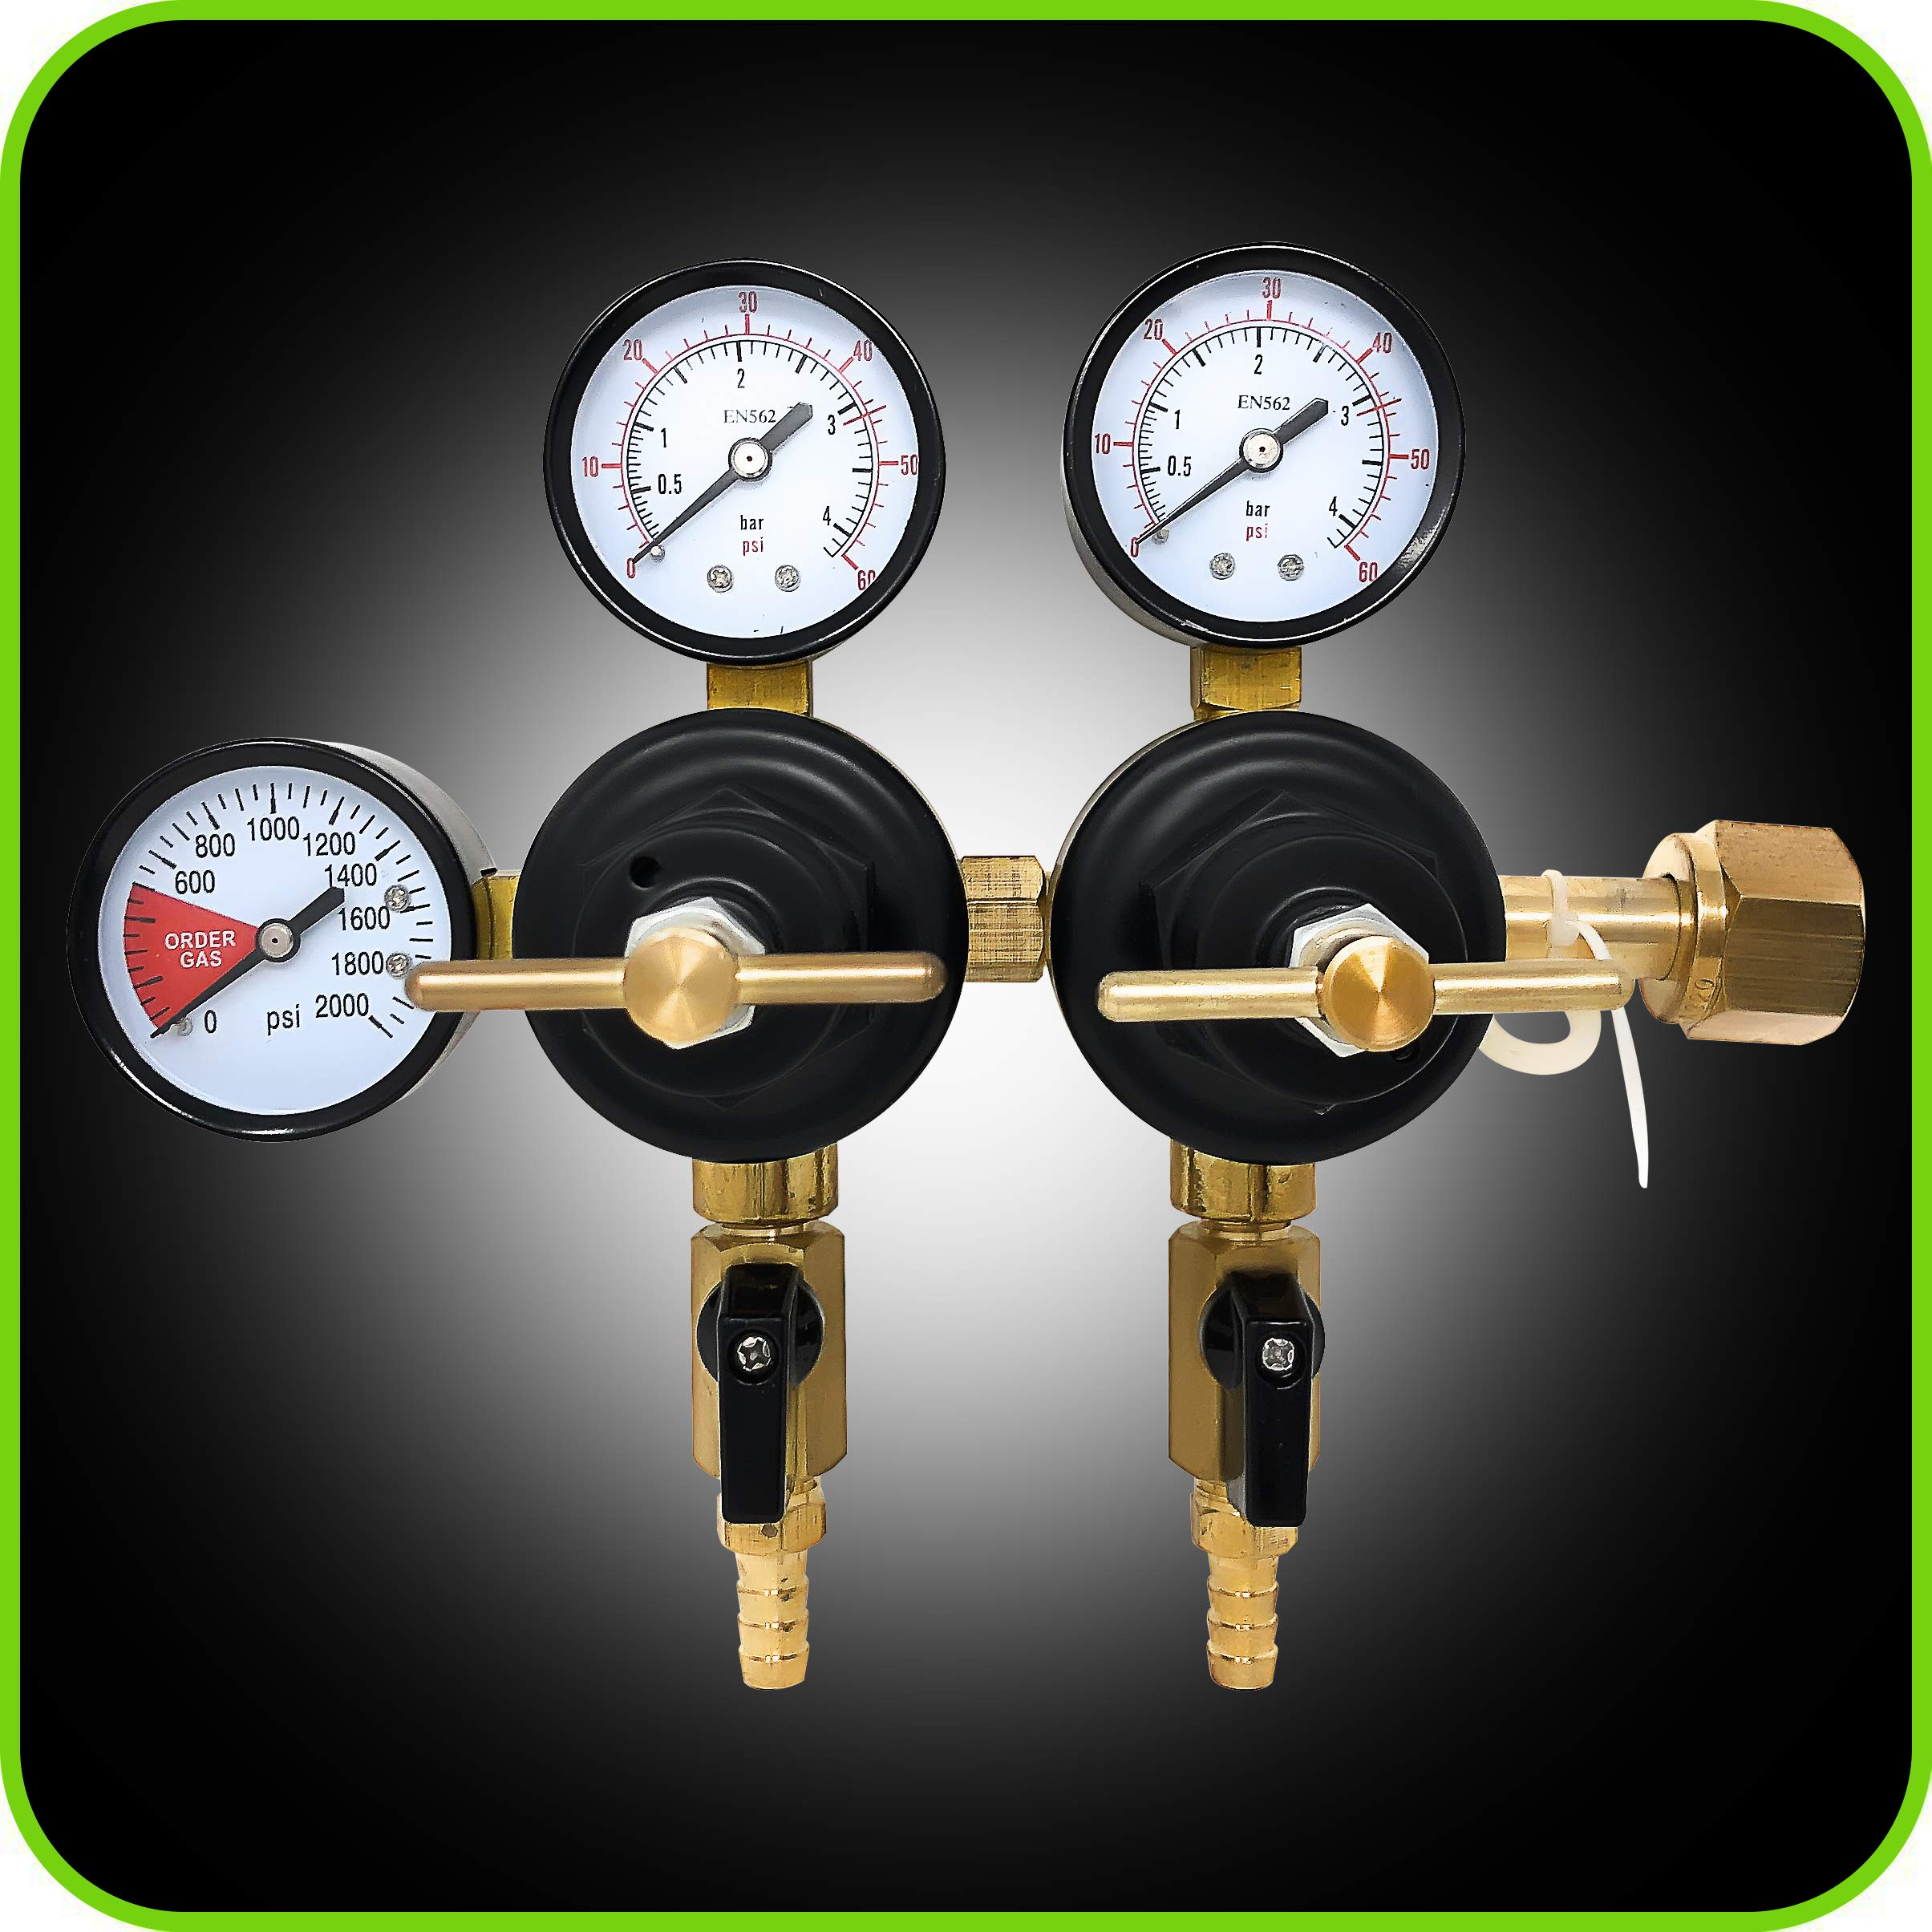 Co2 Beer Regulator Two Product Dual Pressure Kegerator Heavy Duty Features T-Style Adjusting Handle - 0 to 60 PSI-0 to 2000 Tank Pressure CGA-320 Inlet w/ 3/8'' O.D. Safety Discharge 50-55 PSI by Manatee (Image #3)